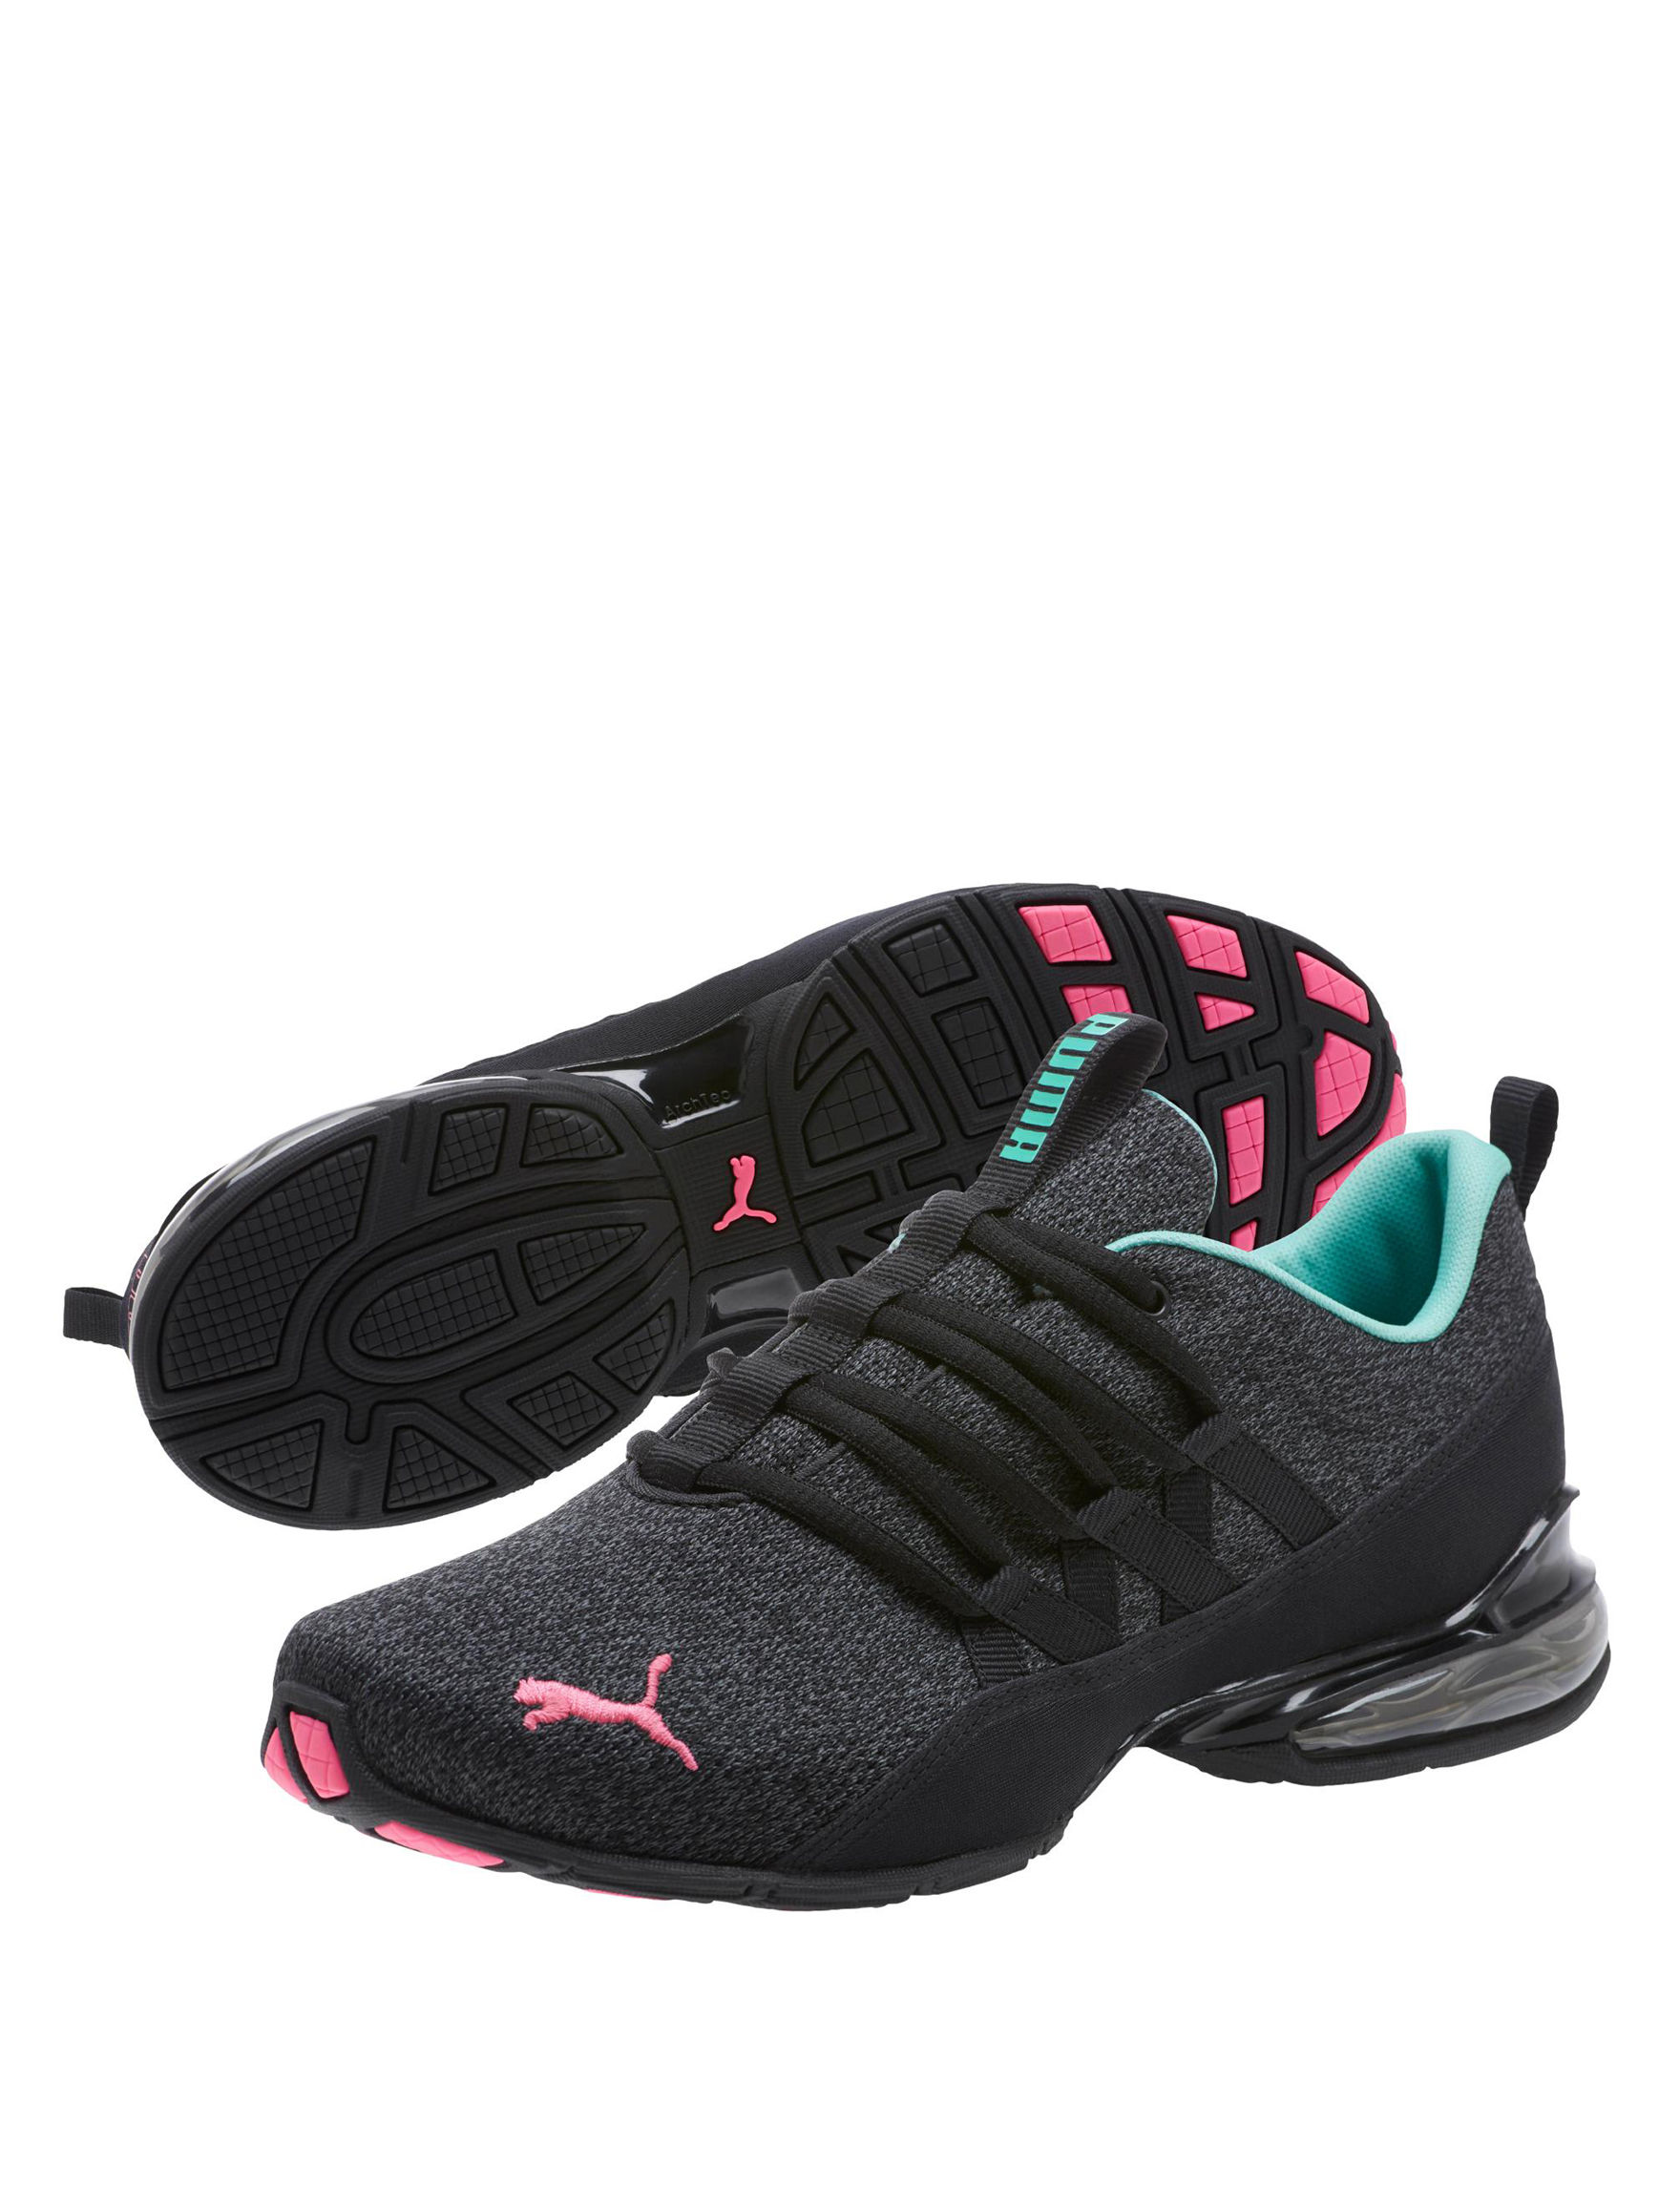 932f089262d Puma Riaze Prowl Athletic Shoes - Rebate Available